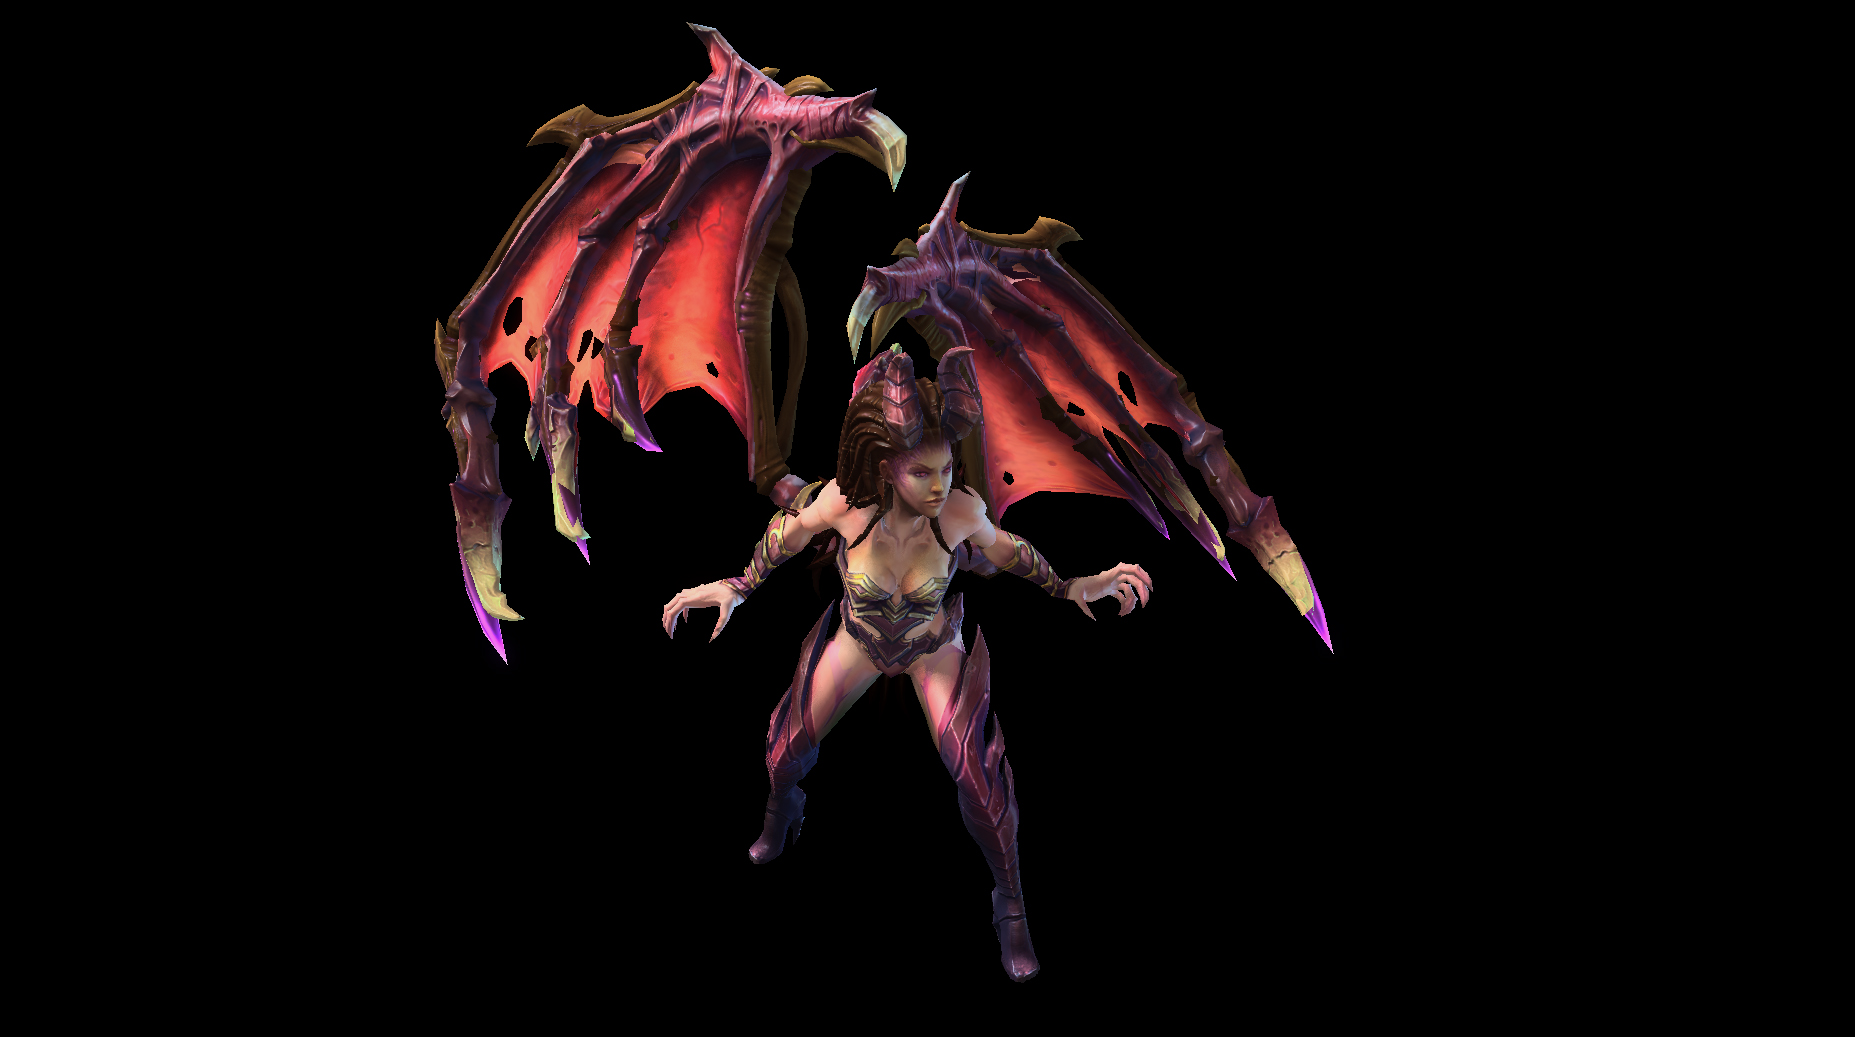 succubus backgrounds and images - photo #38